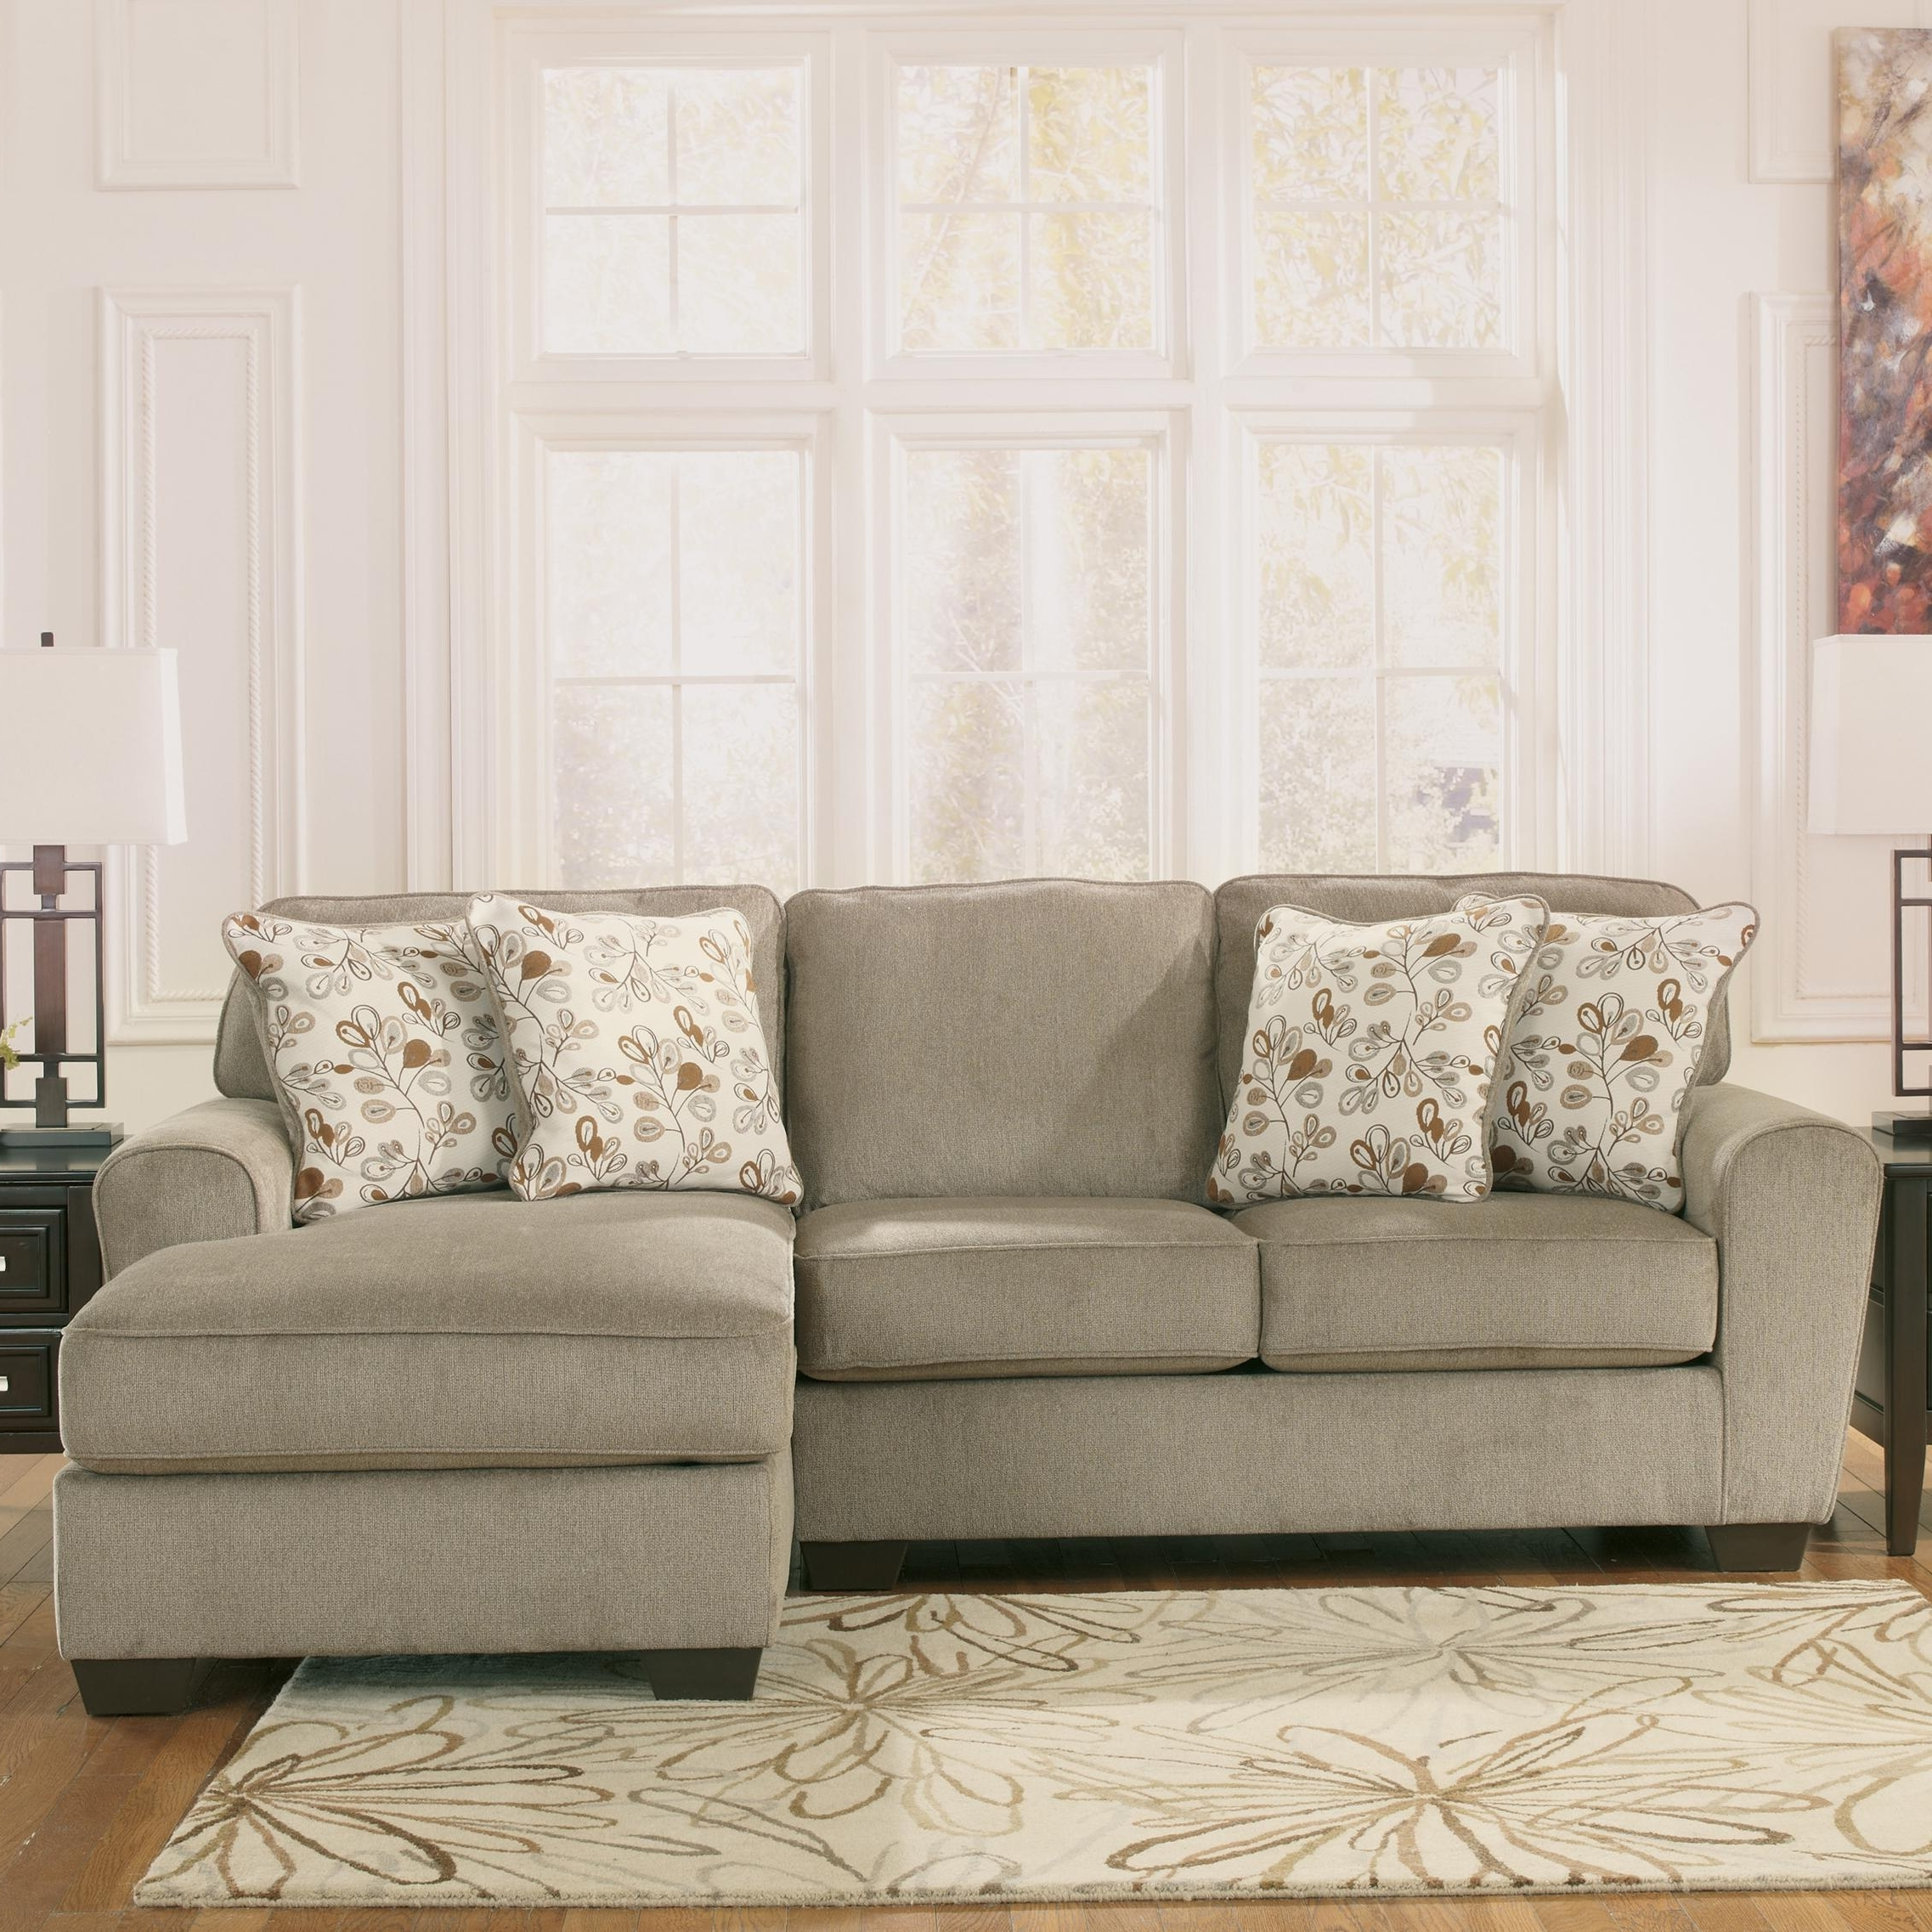 Ashley Furniture Patola Park – Patina 2 Piece Sectional With Right For Most Recent Ashley Furniture Sectionals With Chaise (View 2 of 15)